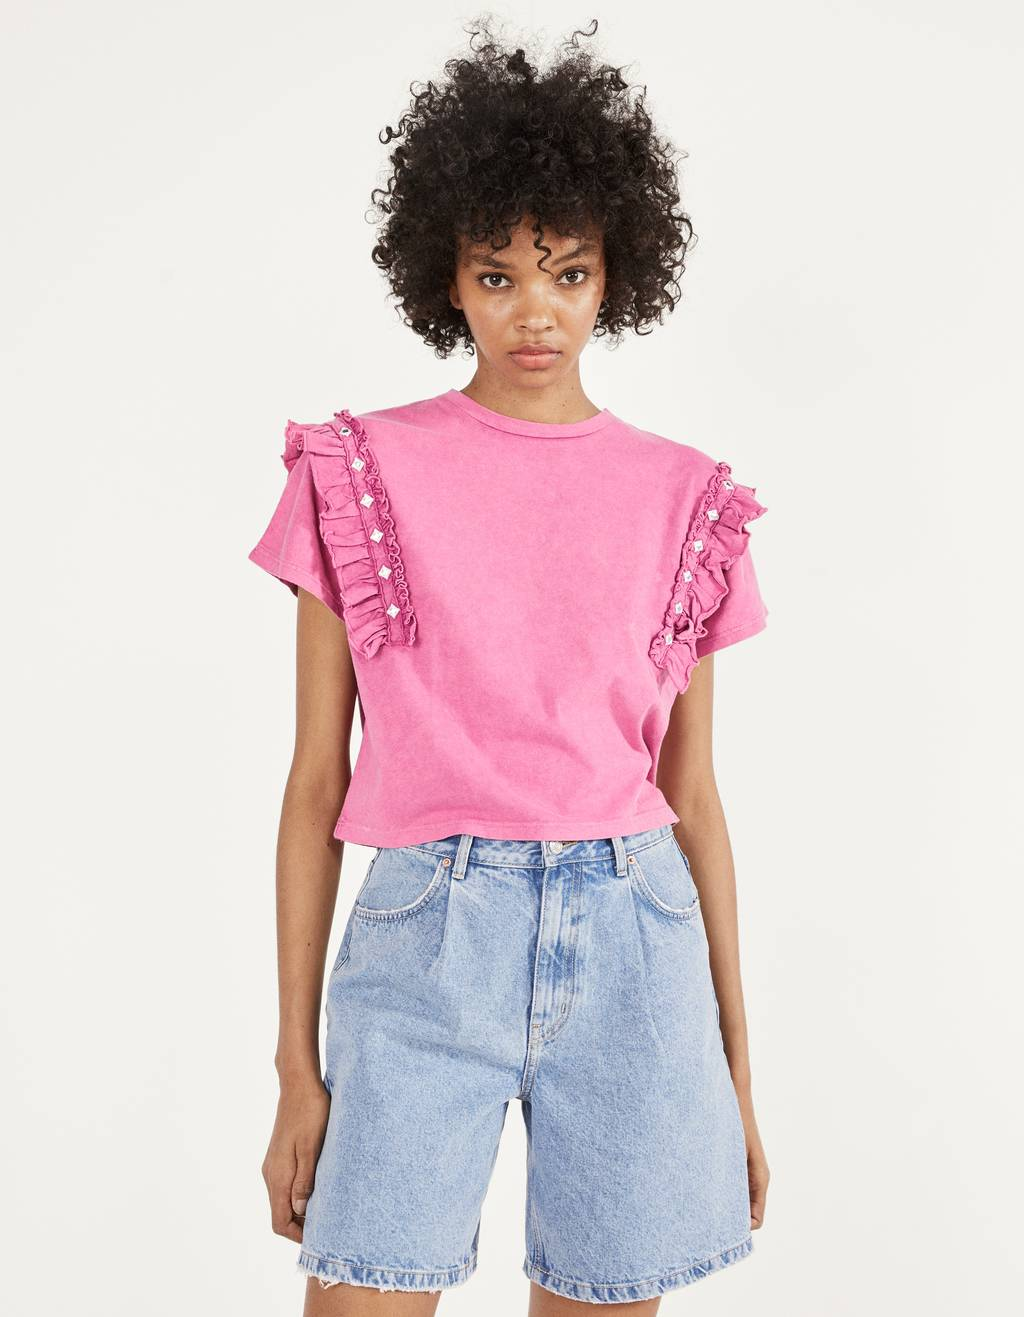 Cropped T-shirt with ruffles and beading